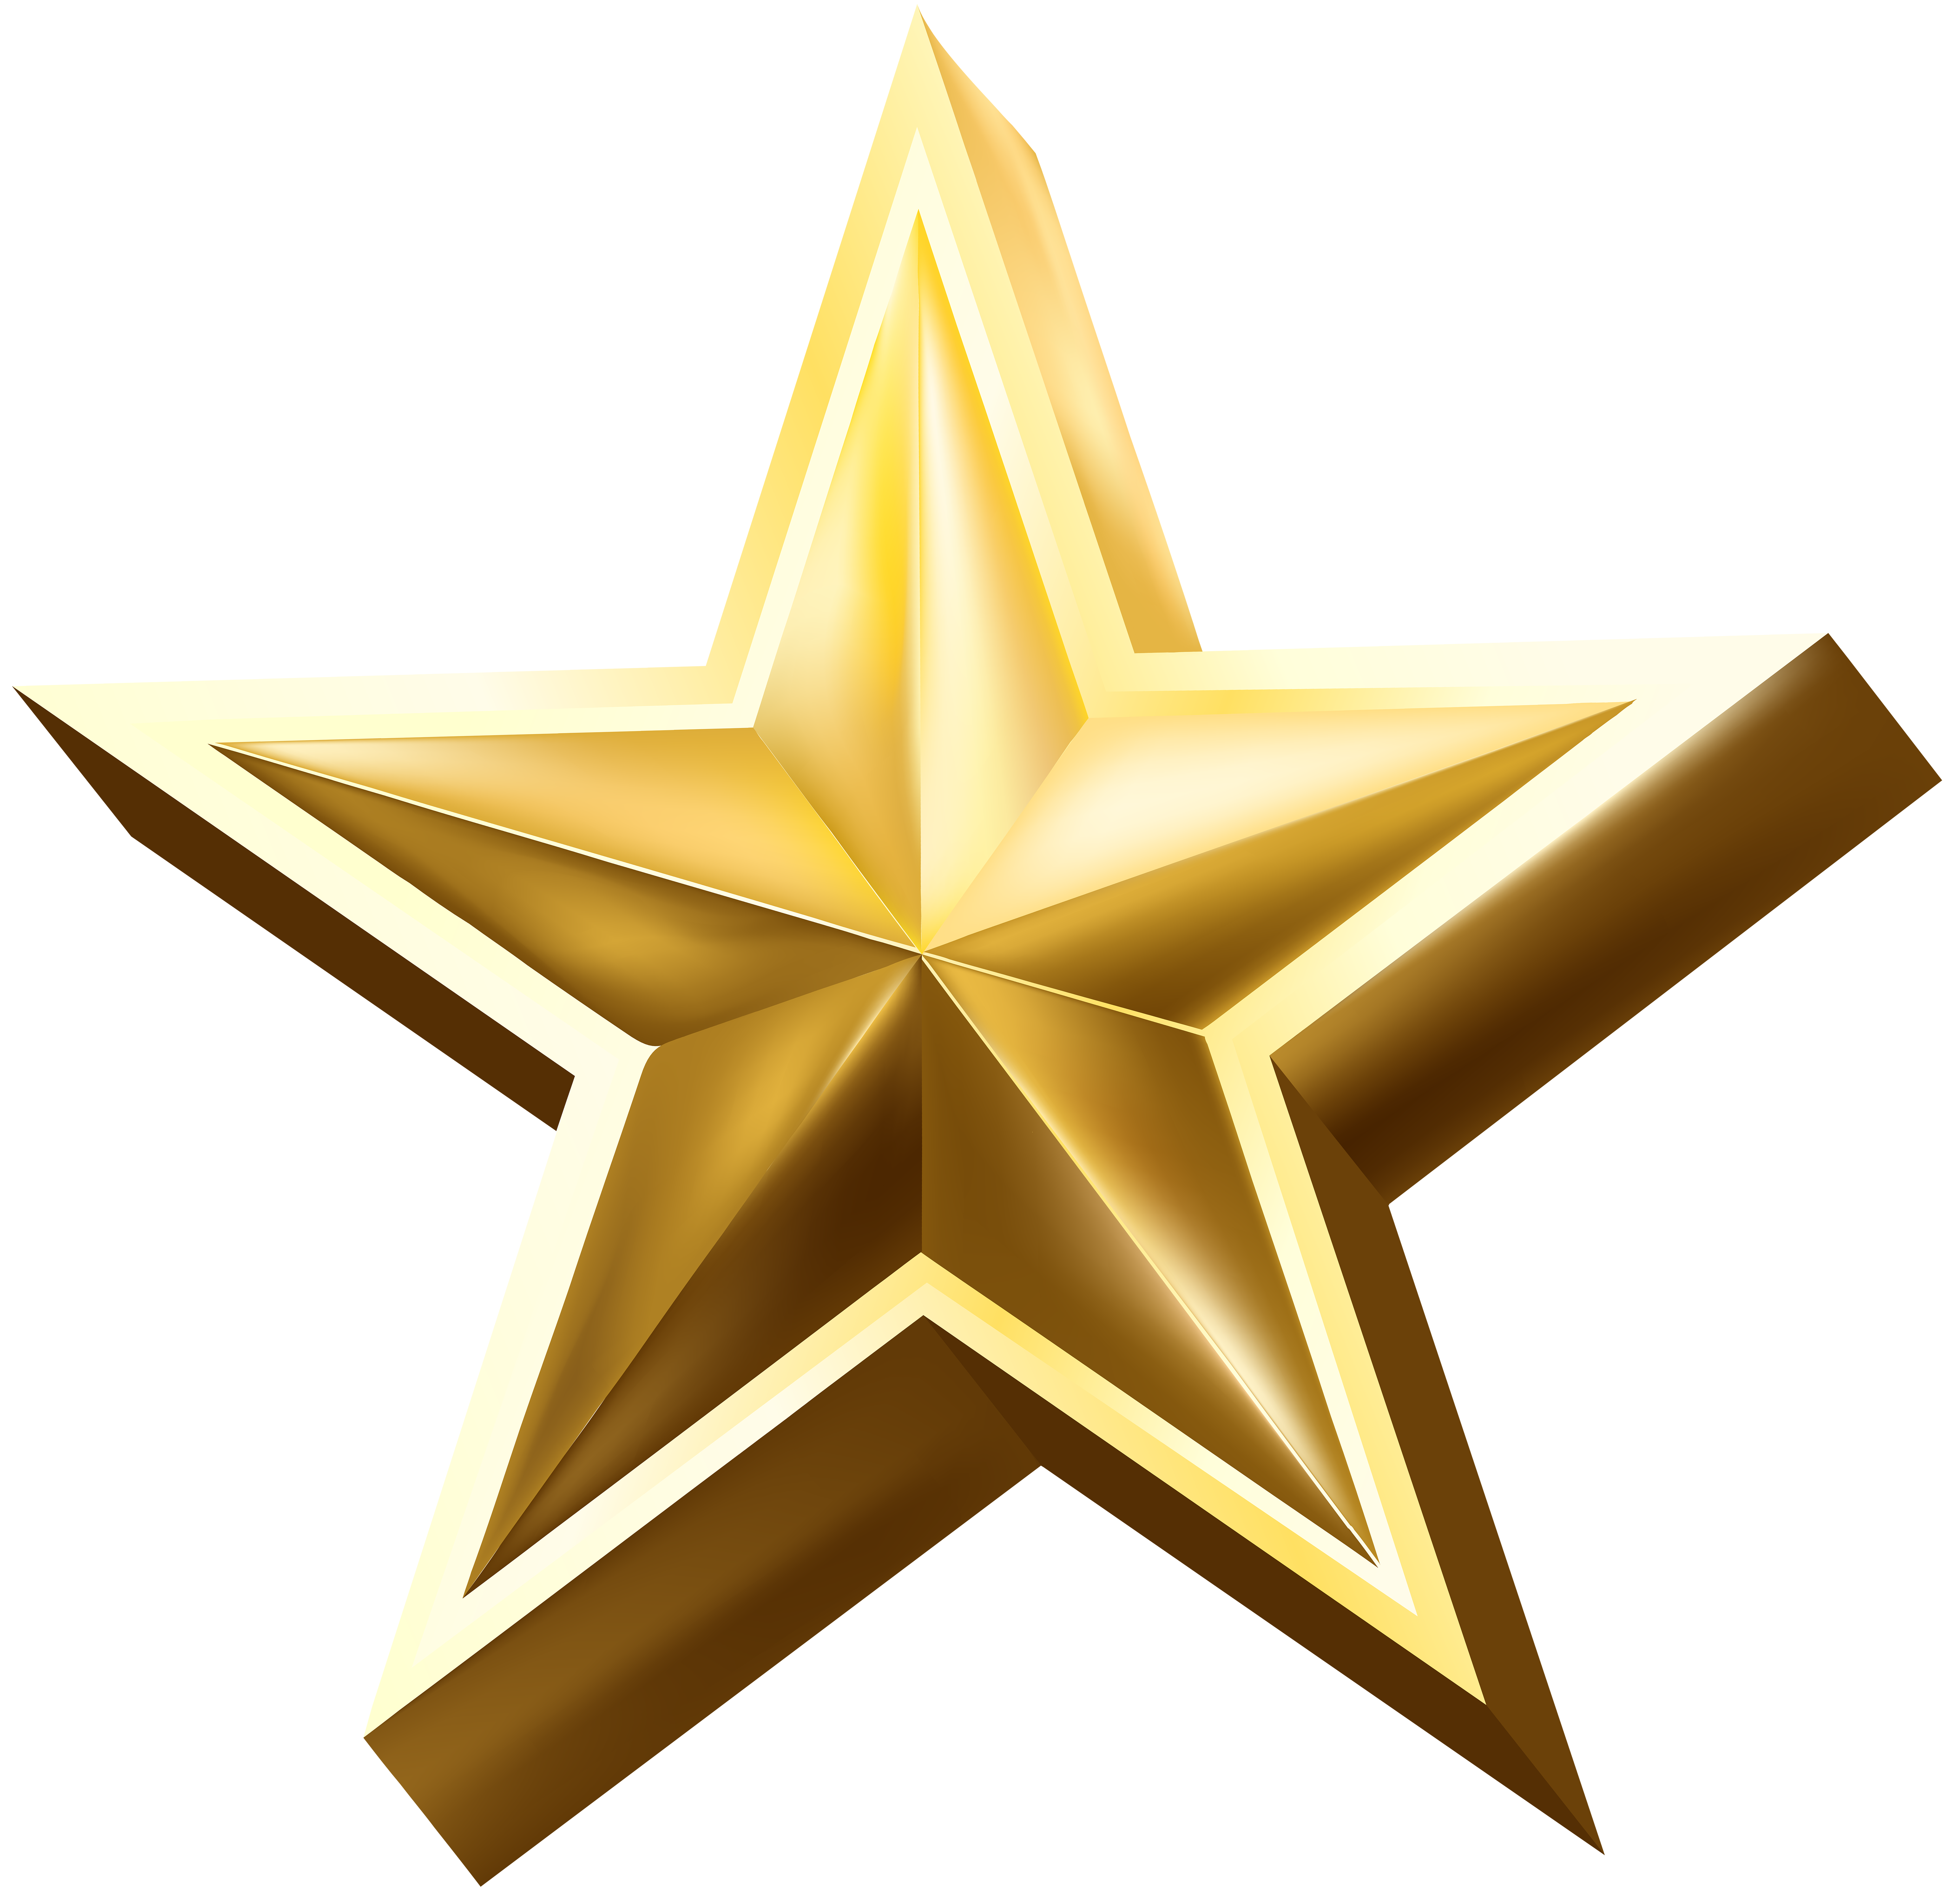 Different sized star clipart picture free download Deco Star Transparent PNG Clip Art Image   Gallery Yopriceville ... picture free download